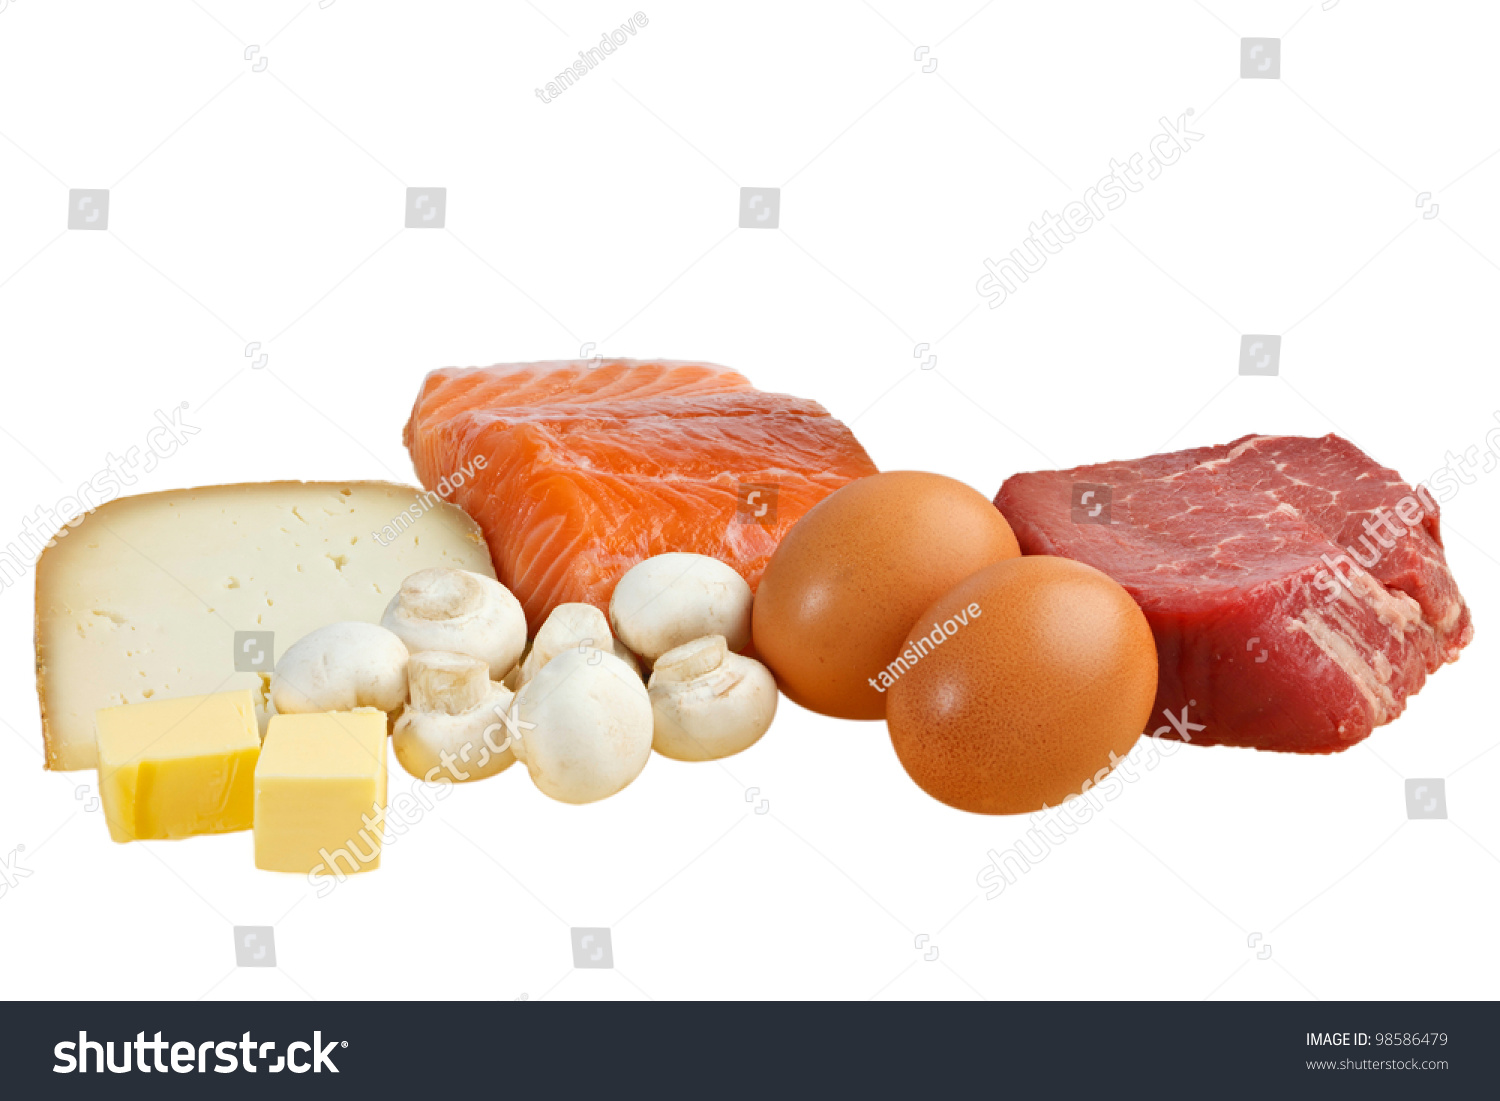 Food sources vitamin d including fish stock photo 98586479 for Vitamin d fish